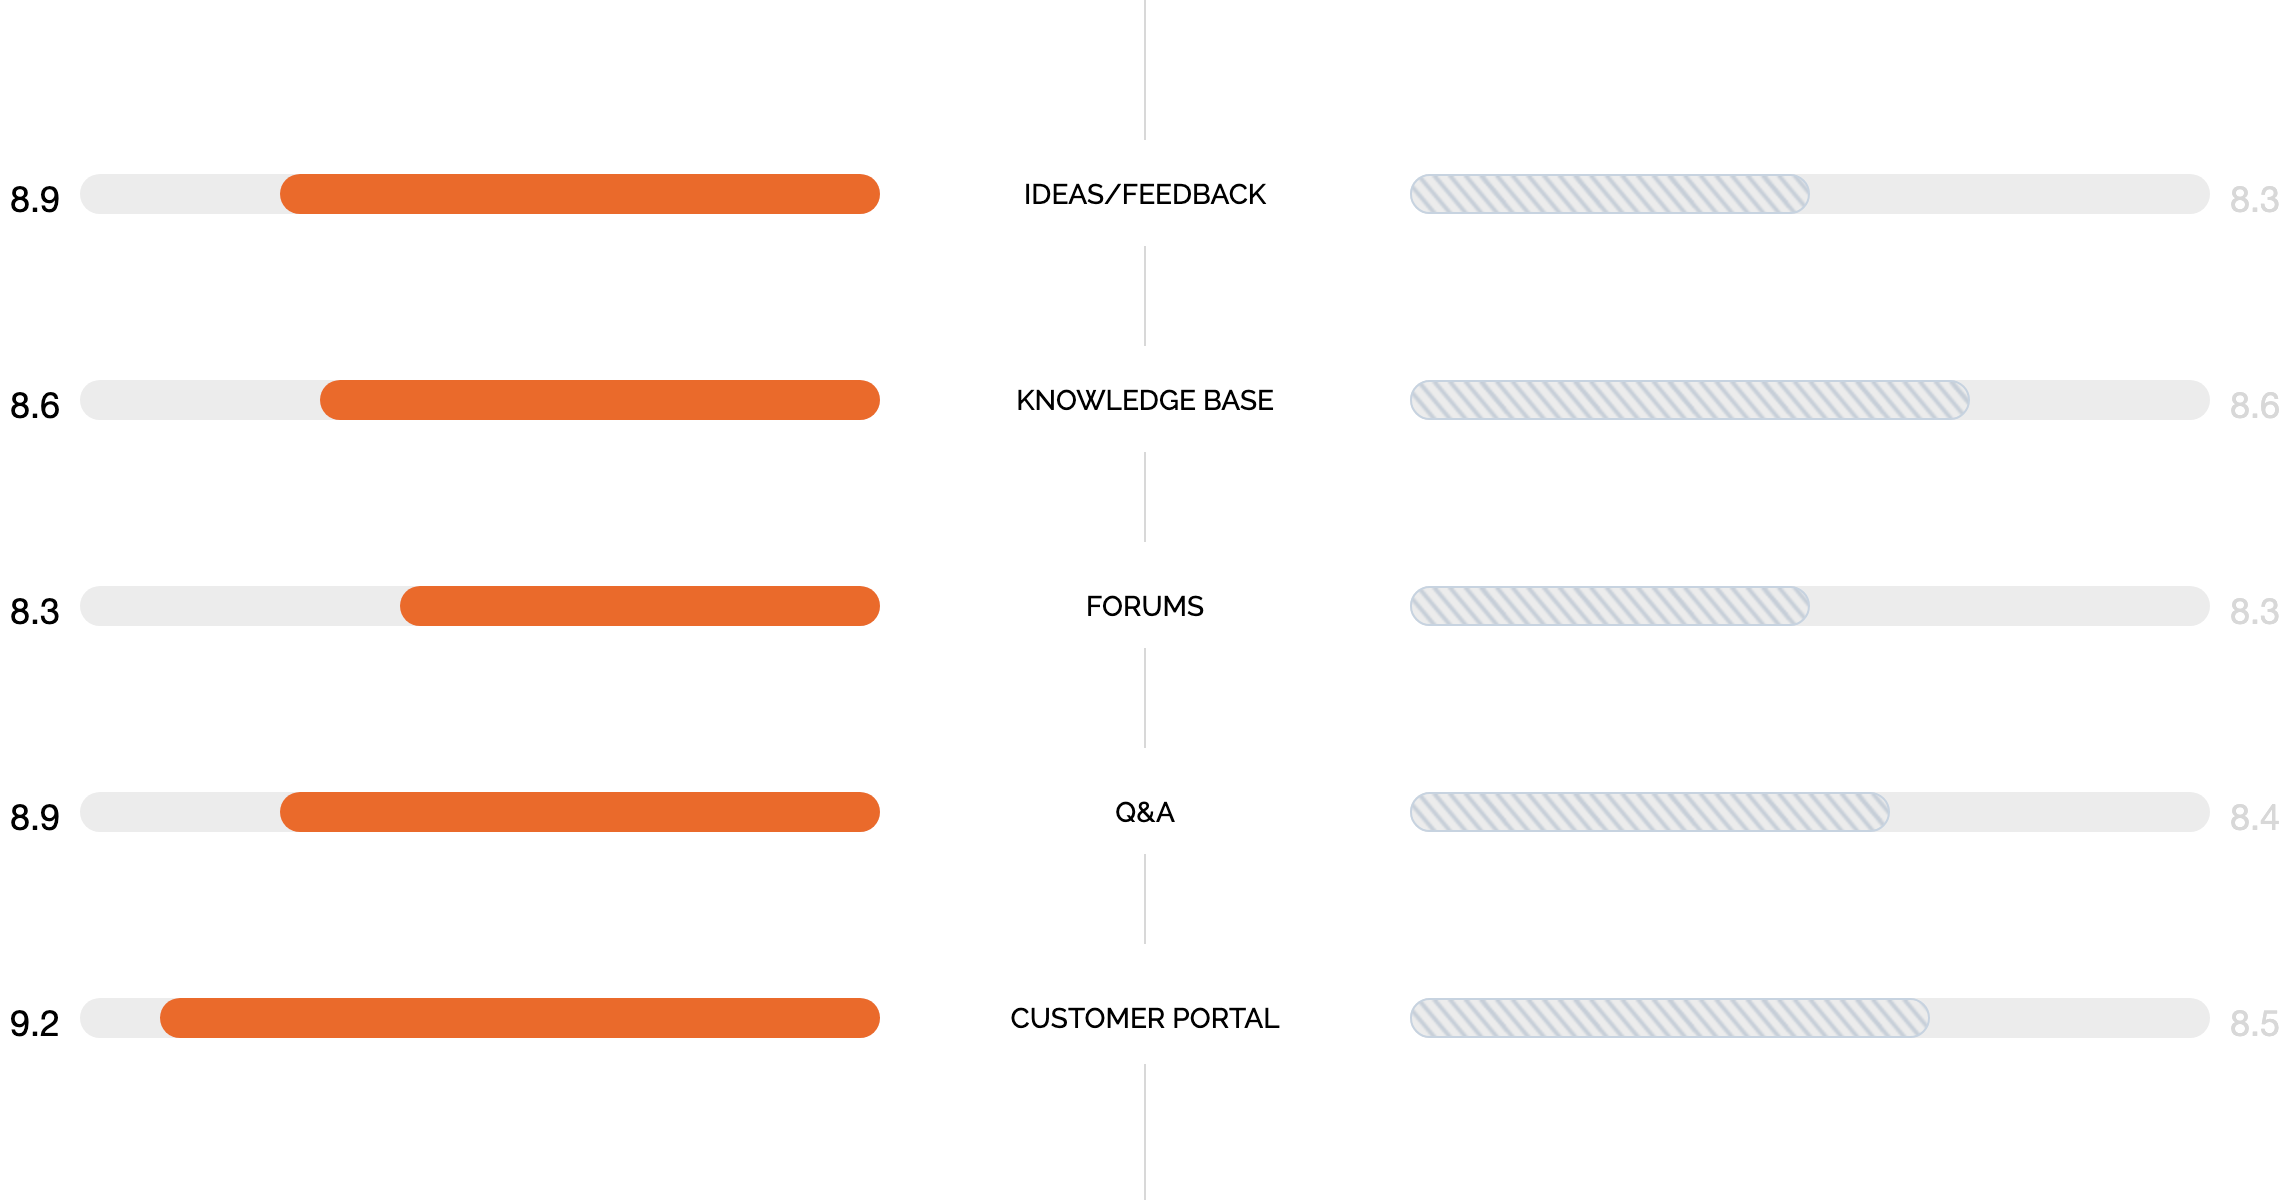 HappyFox vs Zendesk Support - Ideas and Feedback, Knowledge base, Forums, Q&A, and Customer Portal